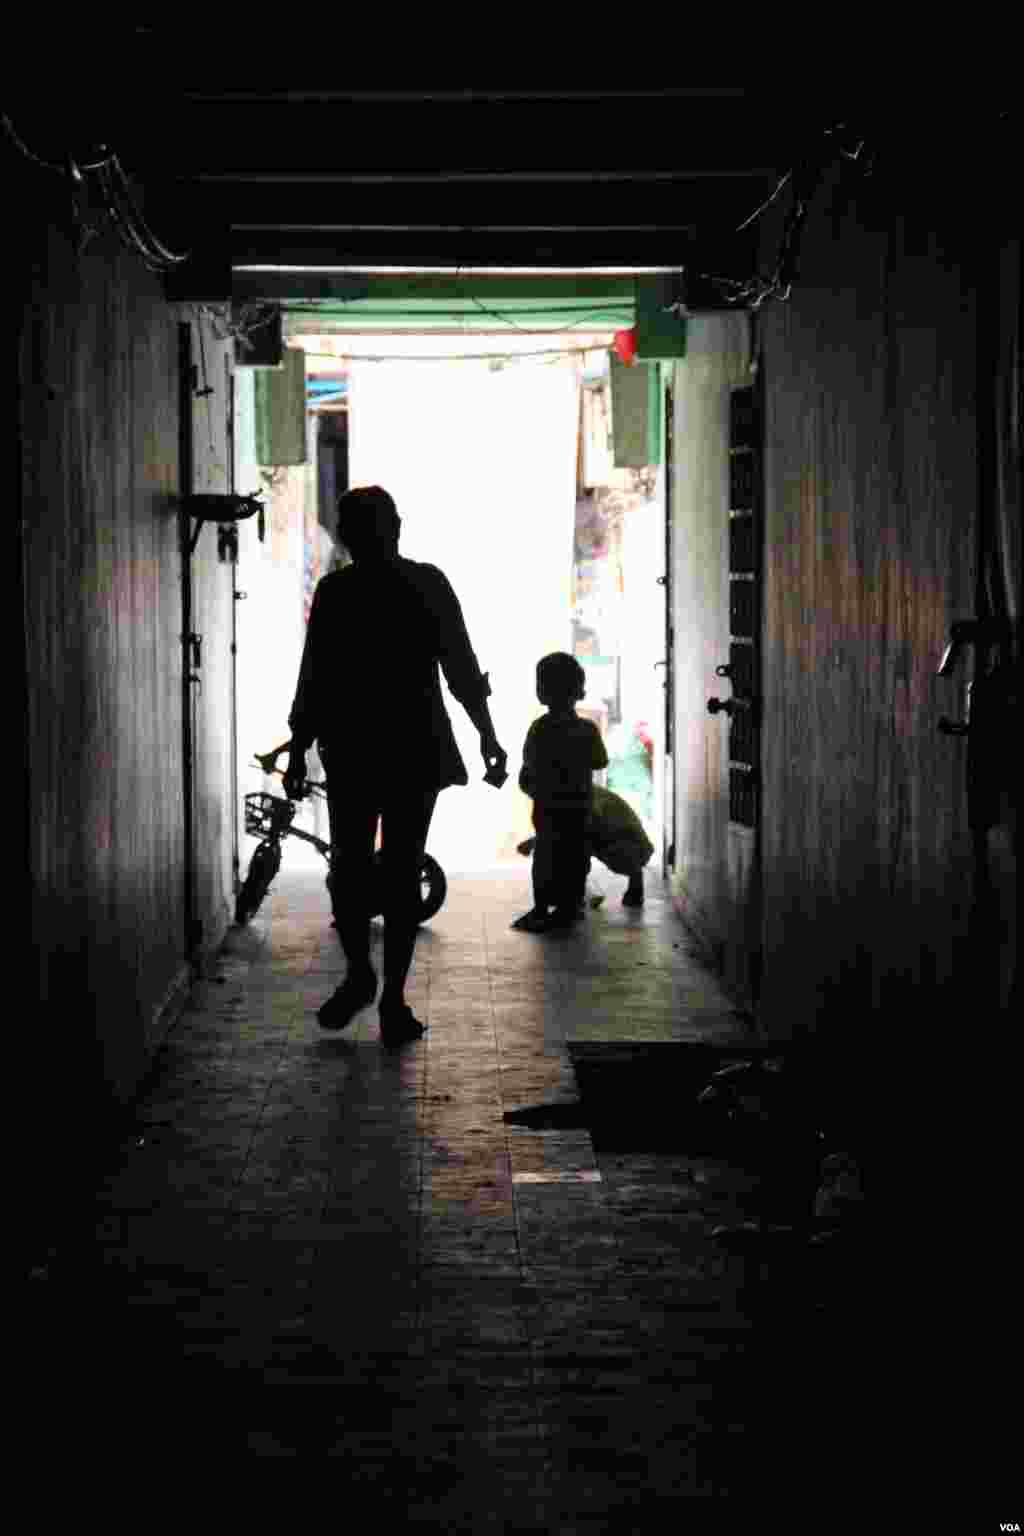 A resident and children walk through ​a dark corridor inside the White Building on Friday, September 5, 2014. (Nov Povleakhena/VOA Khmer)